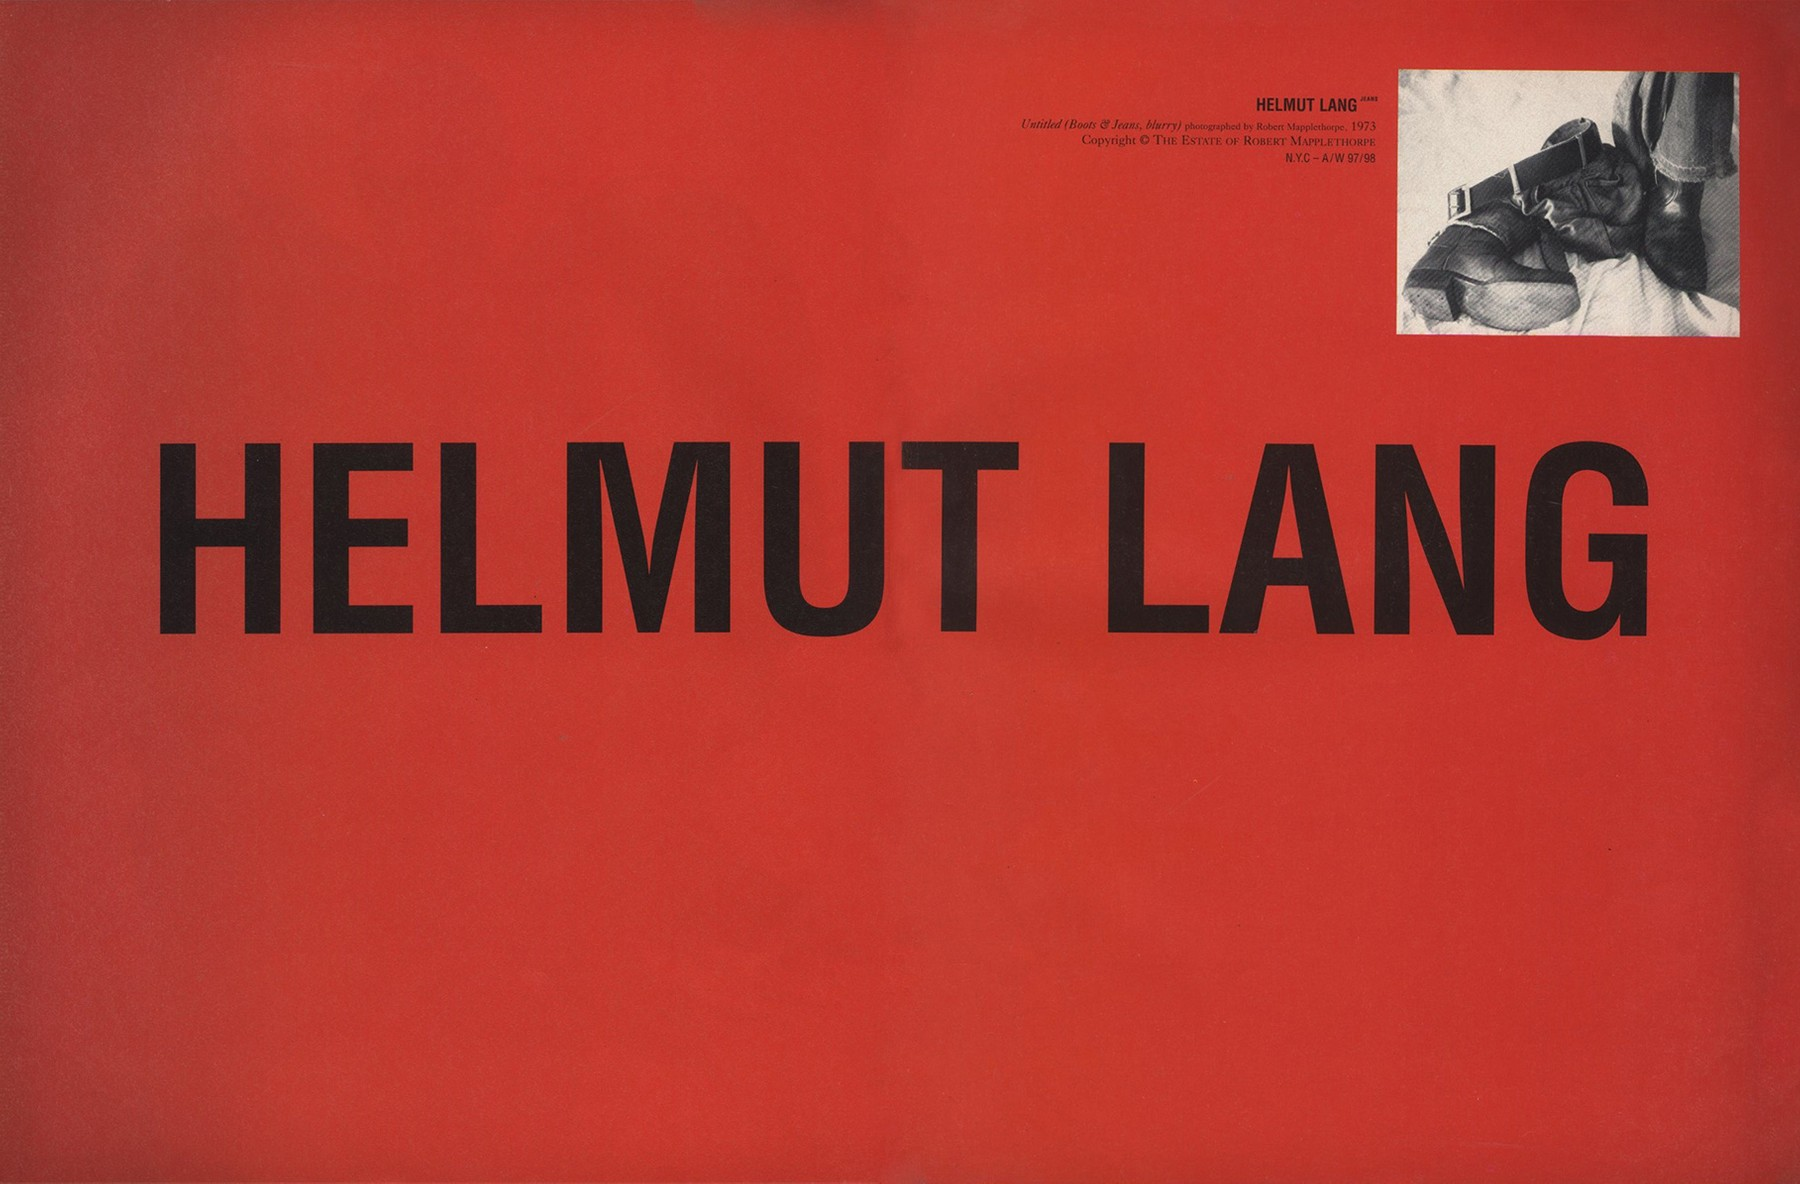 helmut-lang-ad-untitled-boots-jeans-blurry-photographed-by-robert-mapplethorpe-1973-i-d-the-outrage-issue-no-171-december-19...